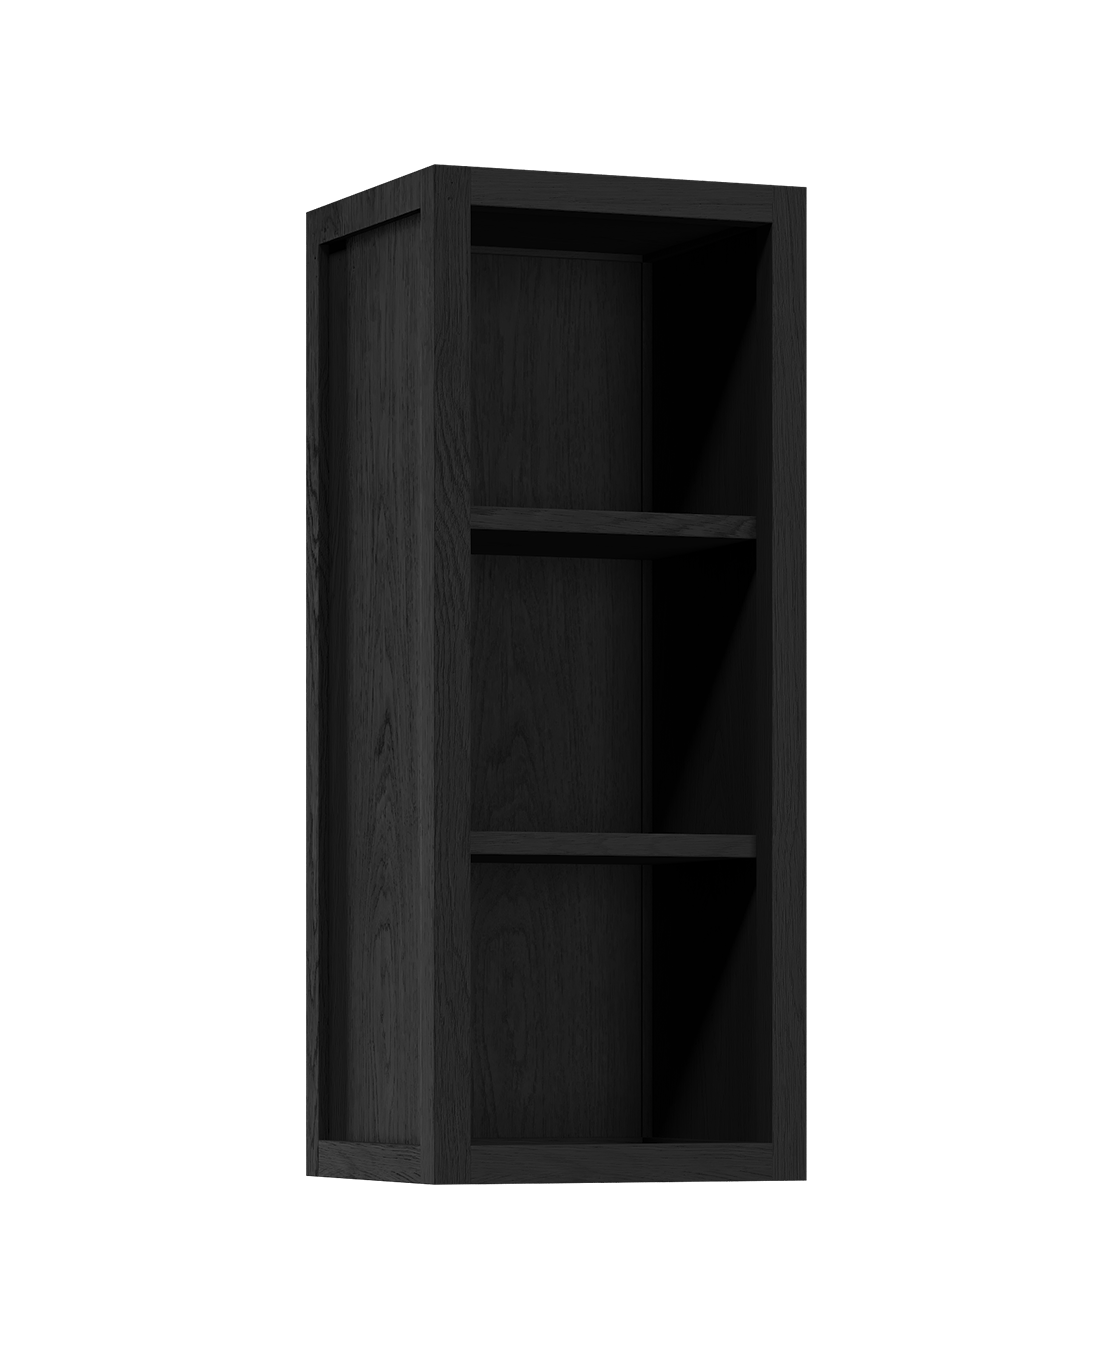 coquo radix midnight black stained oak solid wood modular 2 glass doors open wall upper kitchen cabinet 12 inch C1-W-1212-0000-BK